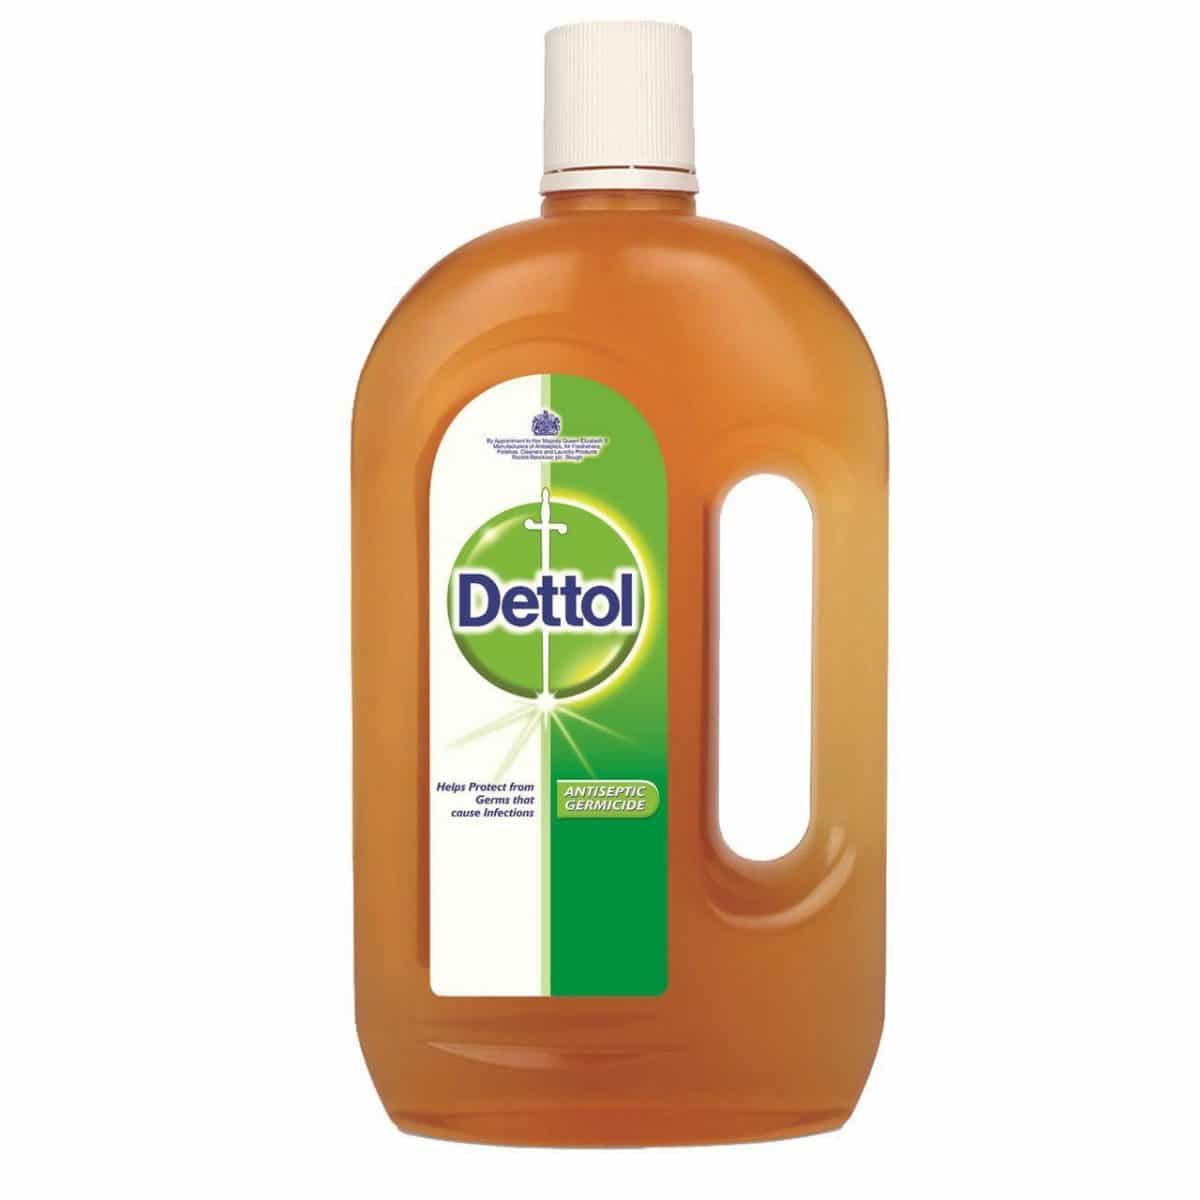 Dettol Antiseptic Disinfectant Liquid for COVID-19 disinfection containing chloroxylenol